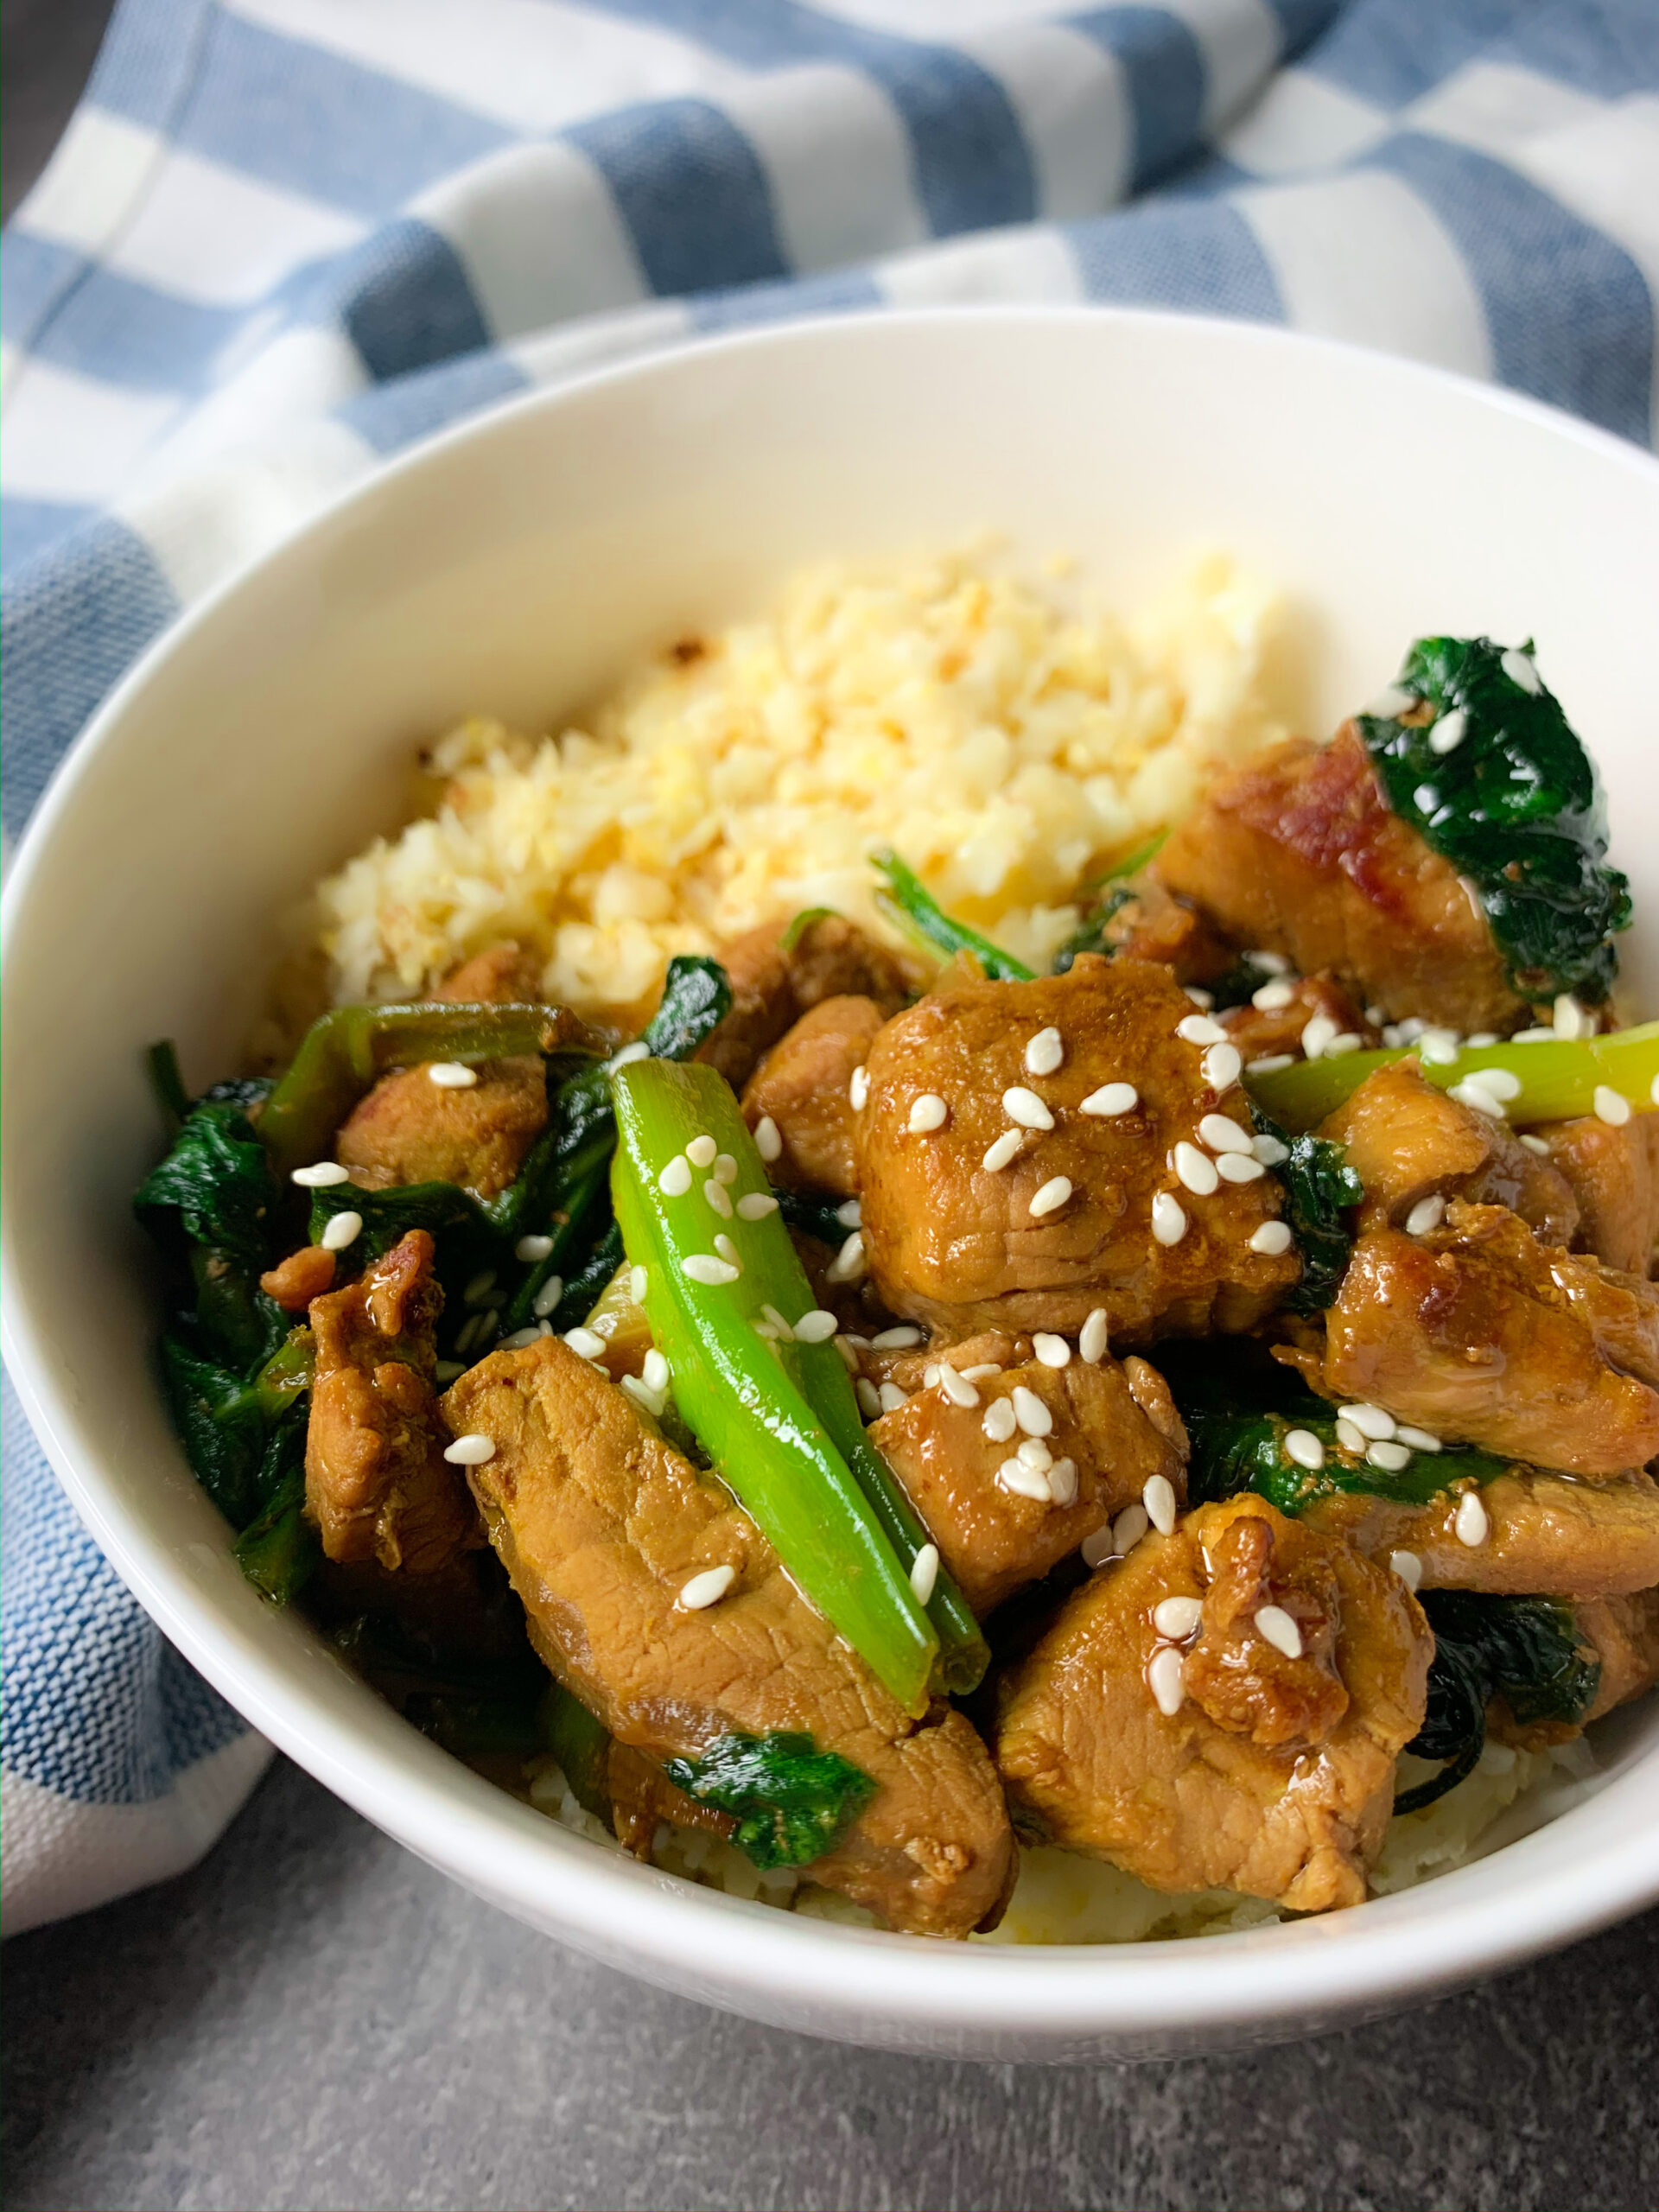 Low carb pork tenderloin with spinach and oyster sauce in Thai style